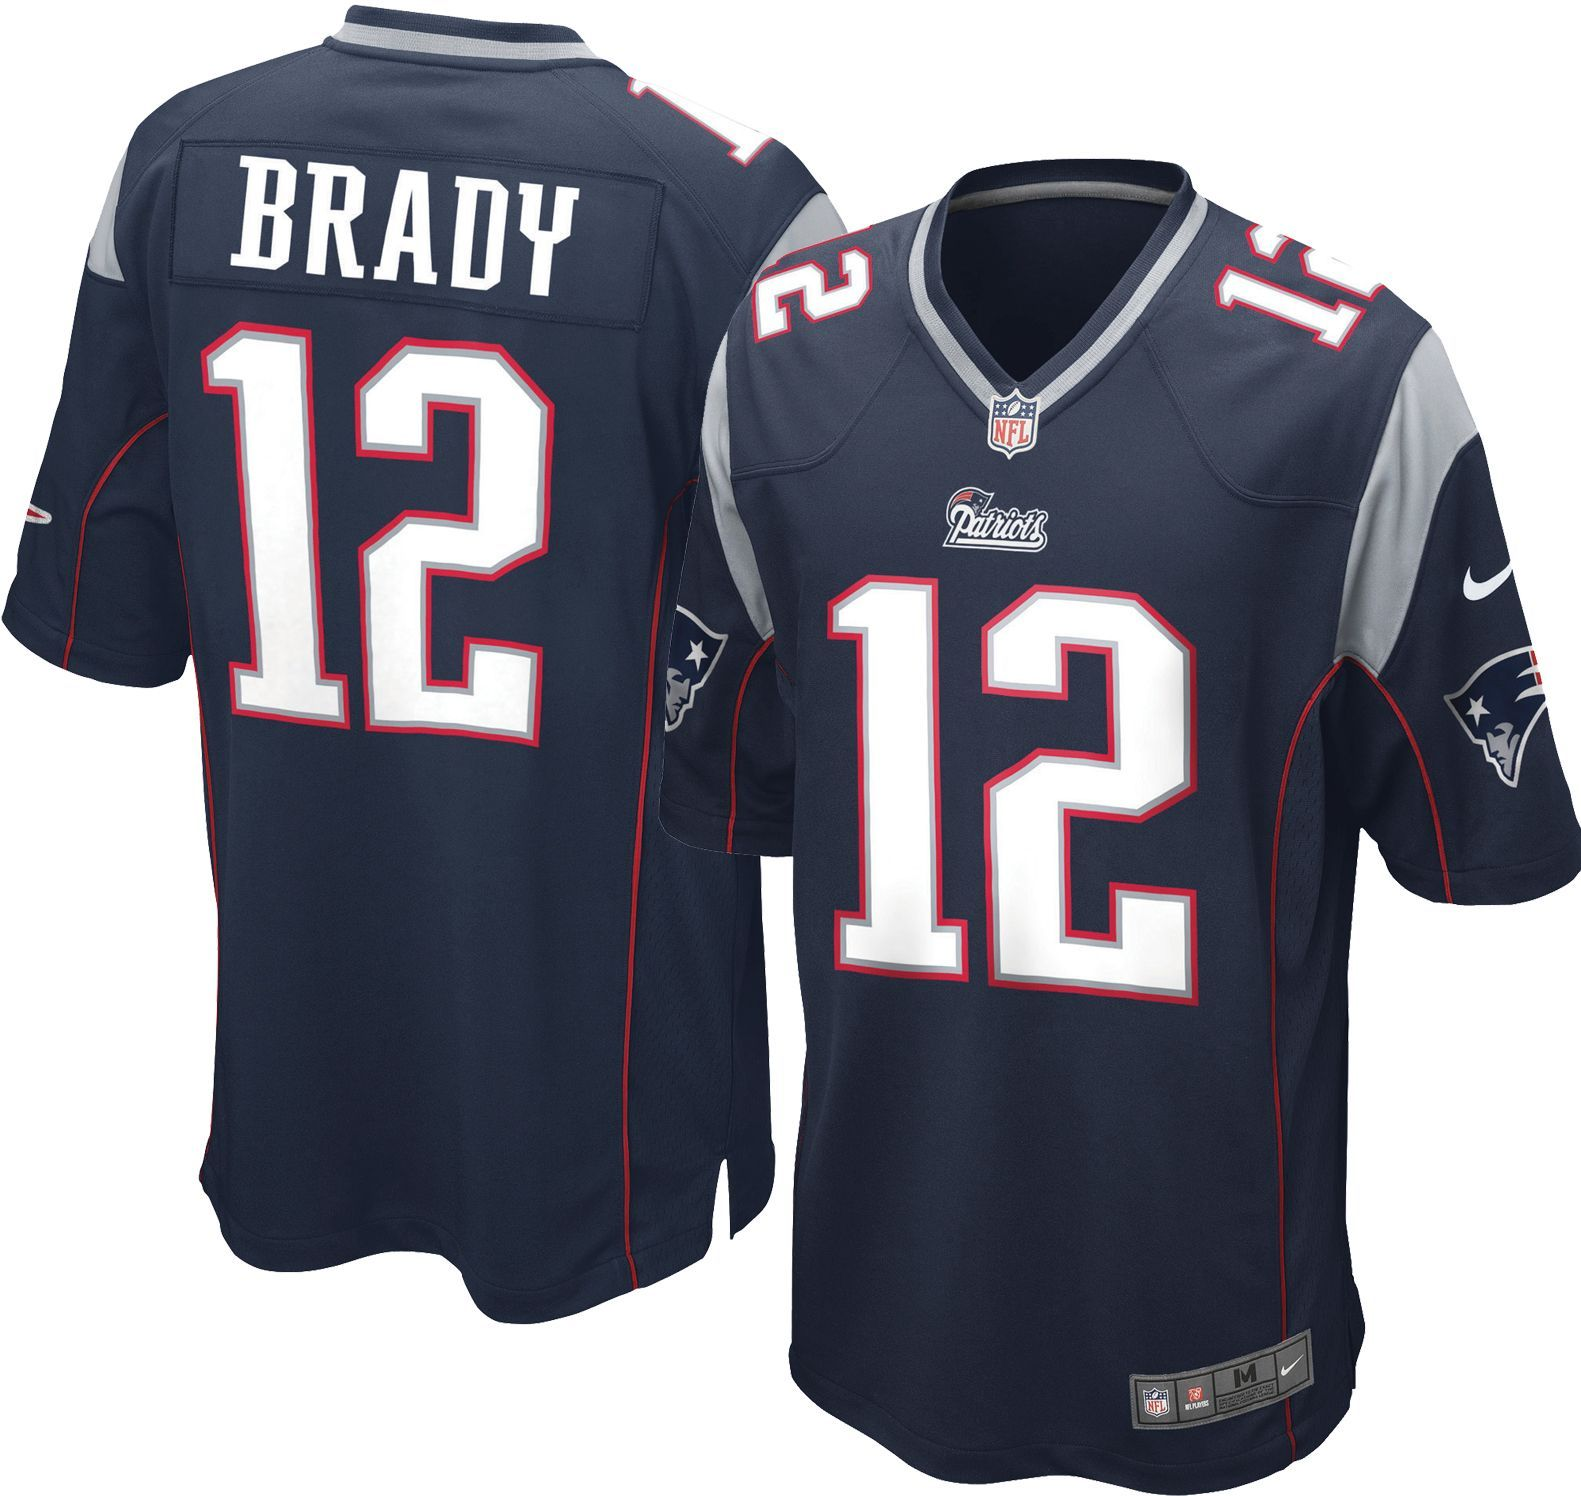 Discount Nike Youth Home Game Jersey New England Patriots Tom Brady #12  supplier